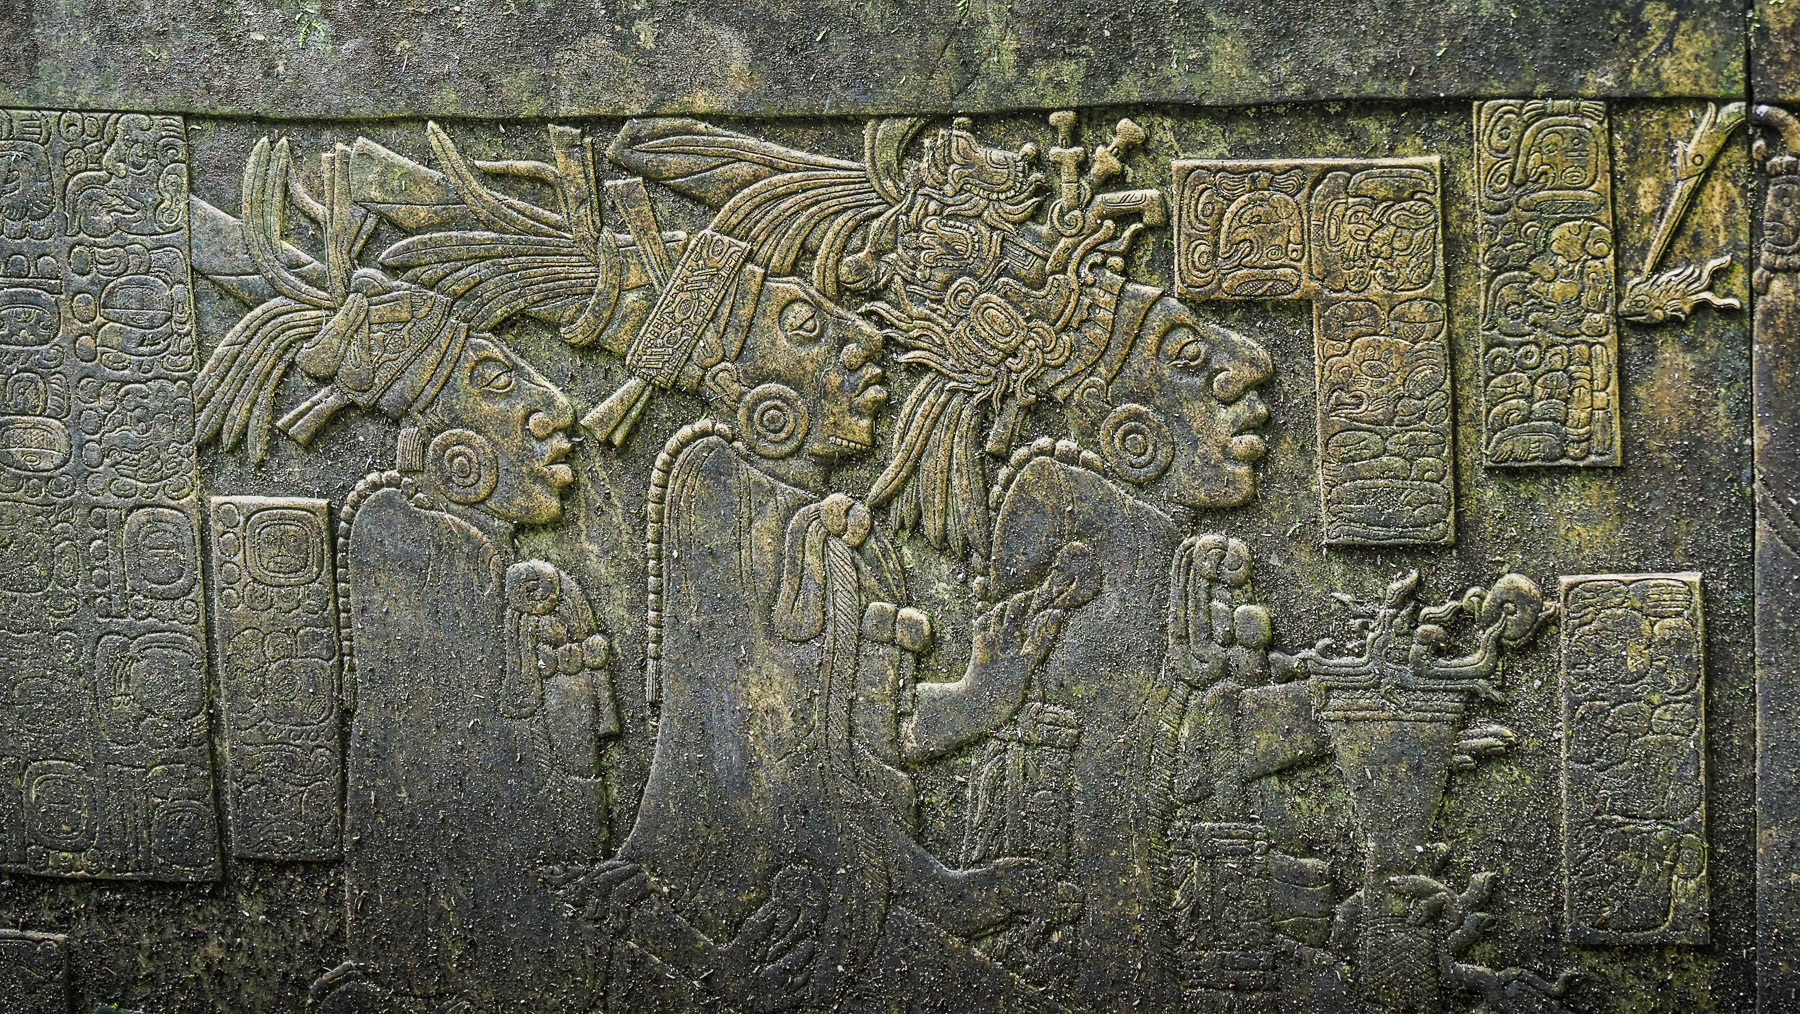 Altarrelief in Palenque